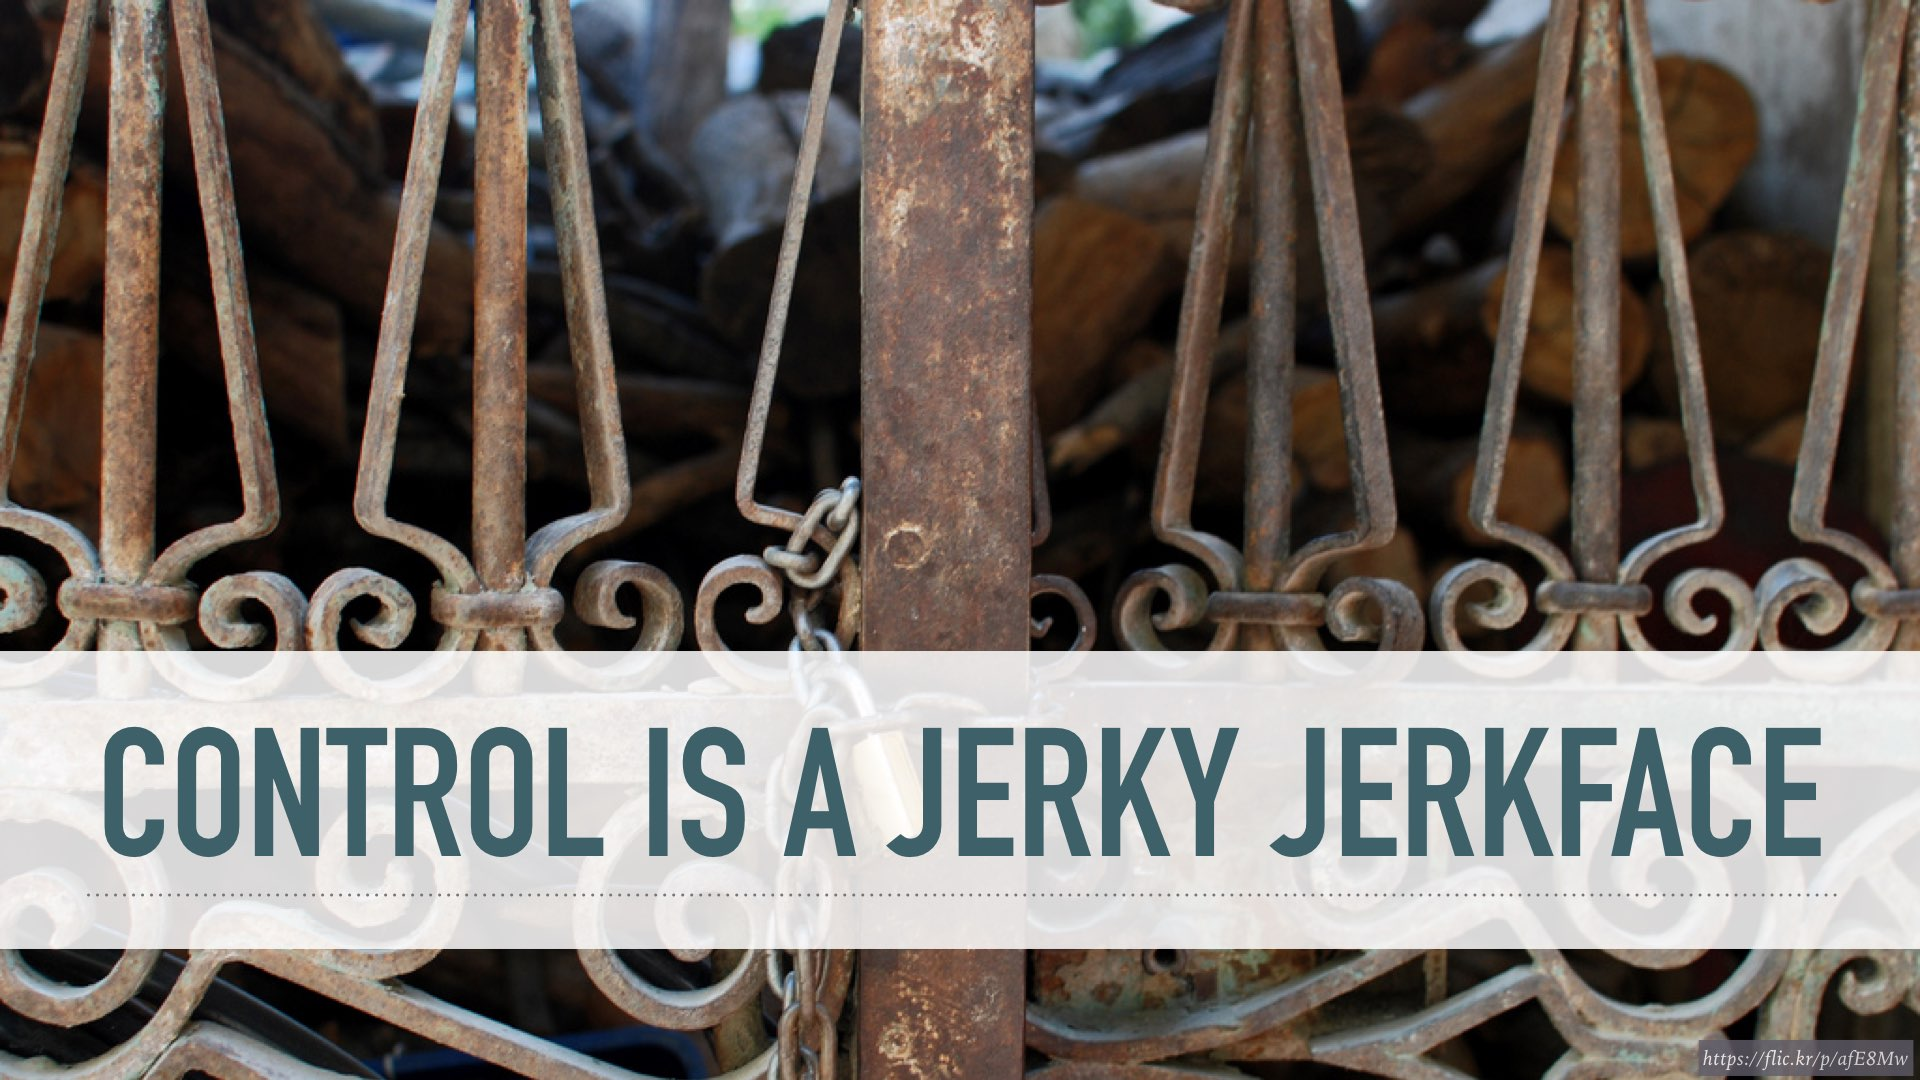 control is a jerky jerkface